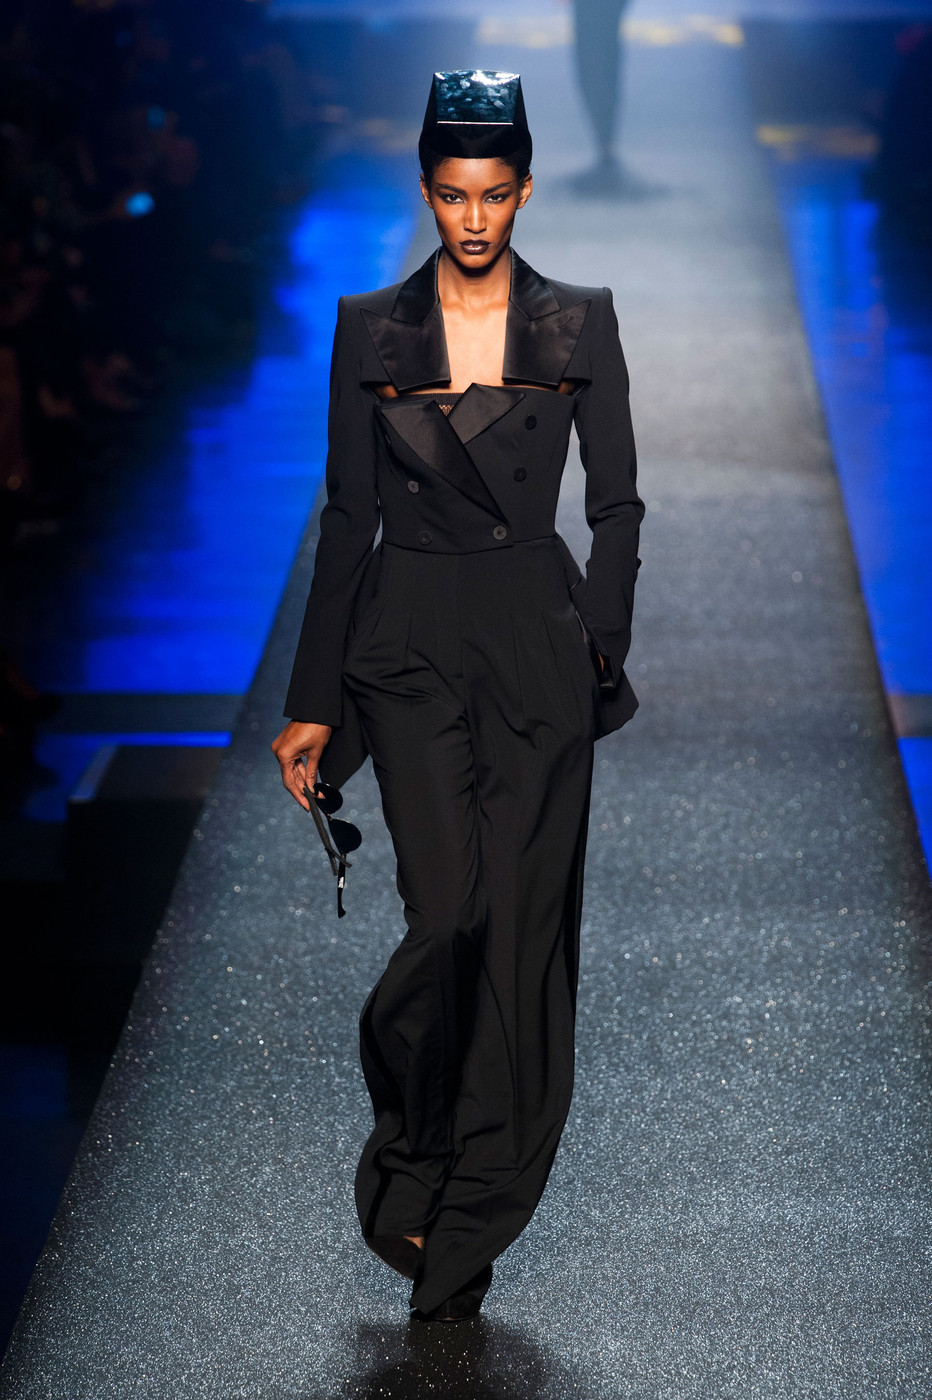 jean paul gaultier at paris fashion week spring 2013 livingly. Black Bedroom Furniture Sets. Home Design Ideas